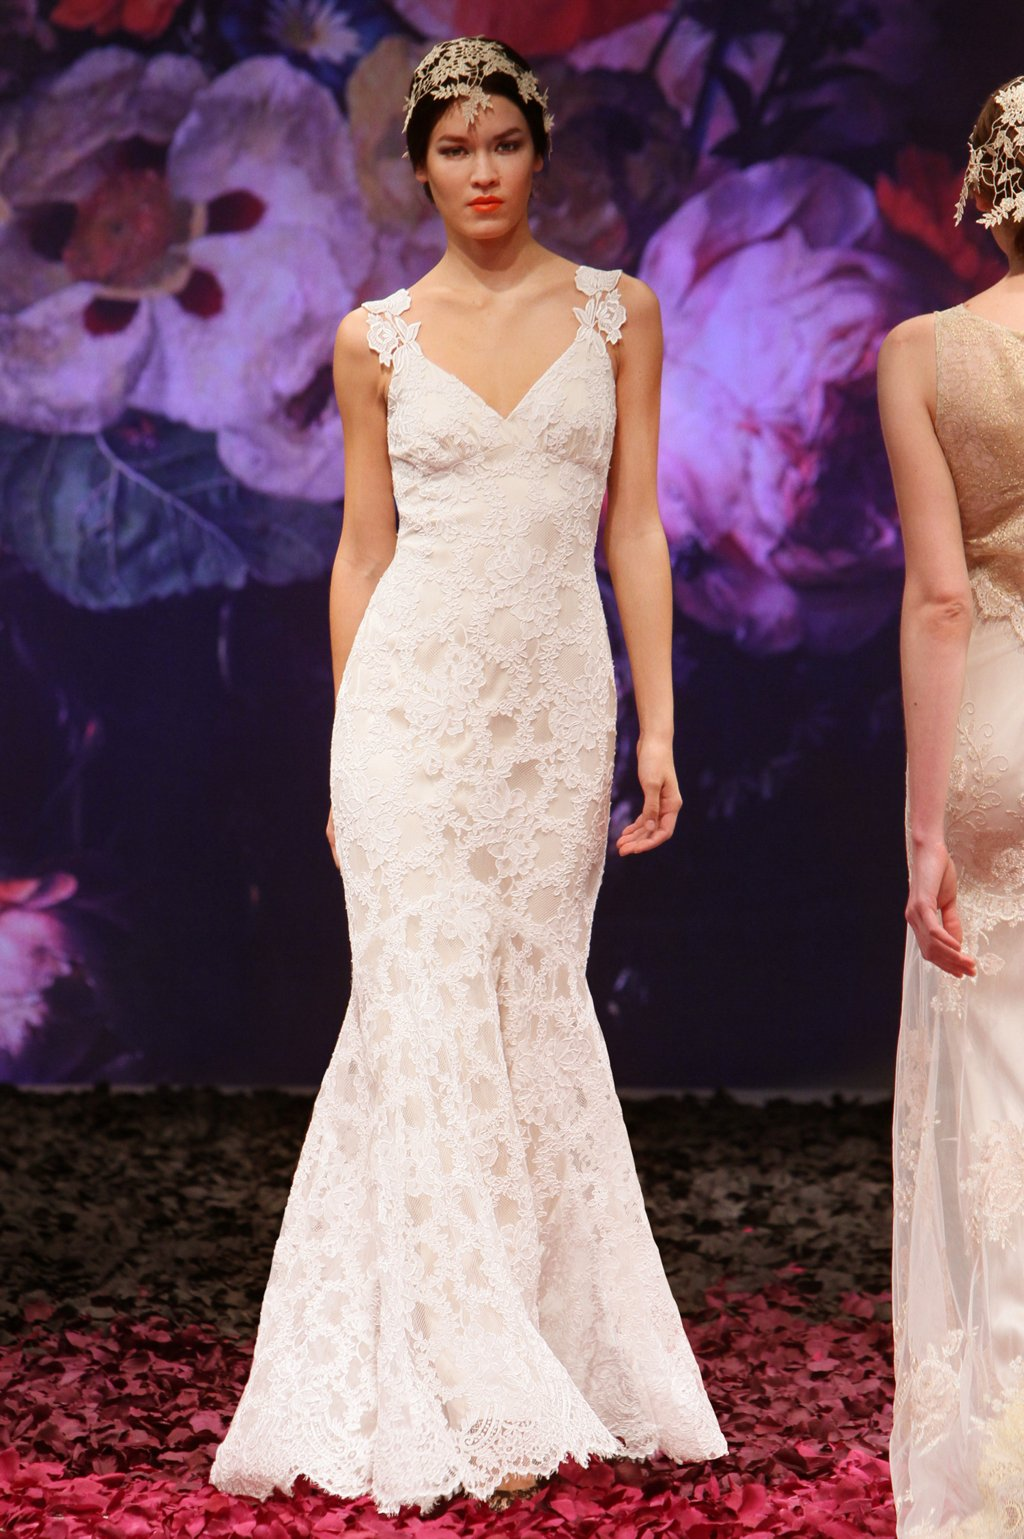 Belladonna Wedding Dress By Claire Pettibone 2017 Still Life Bridal Collection